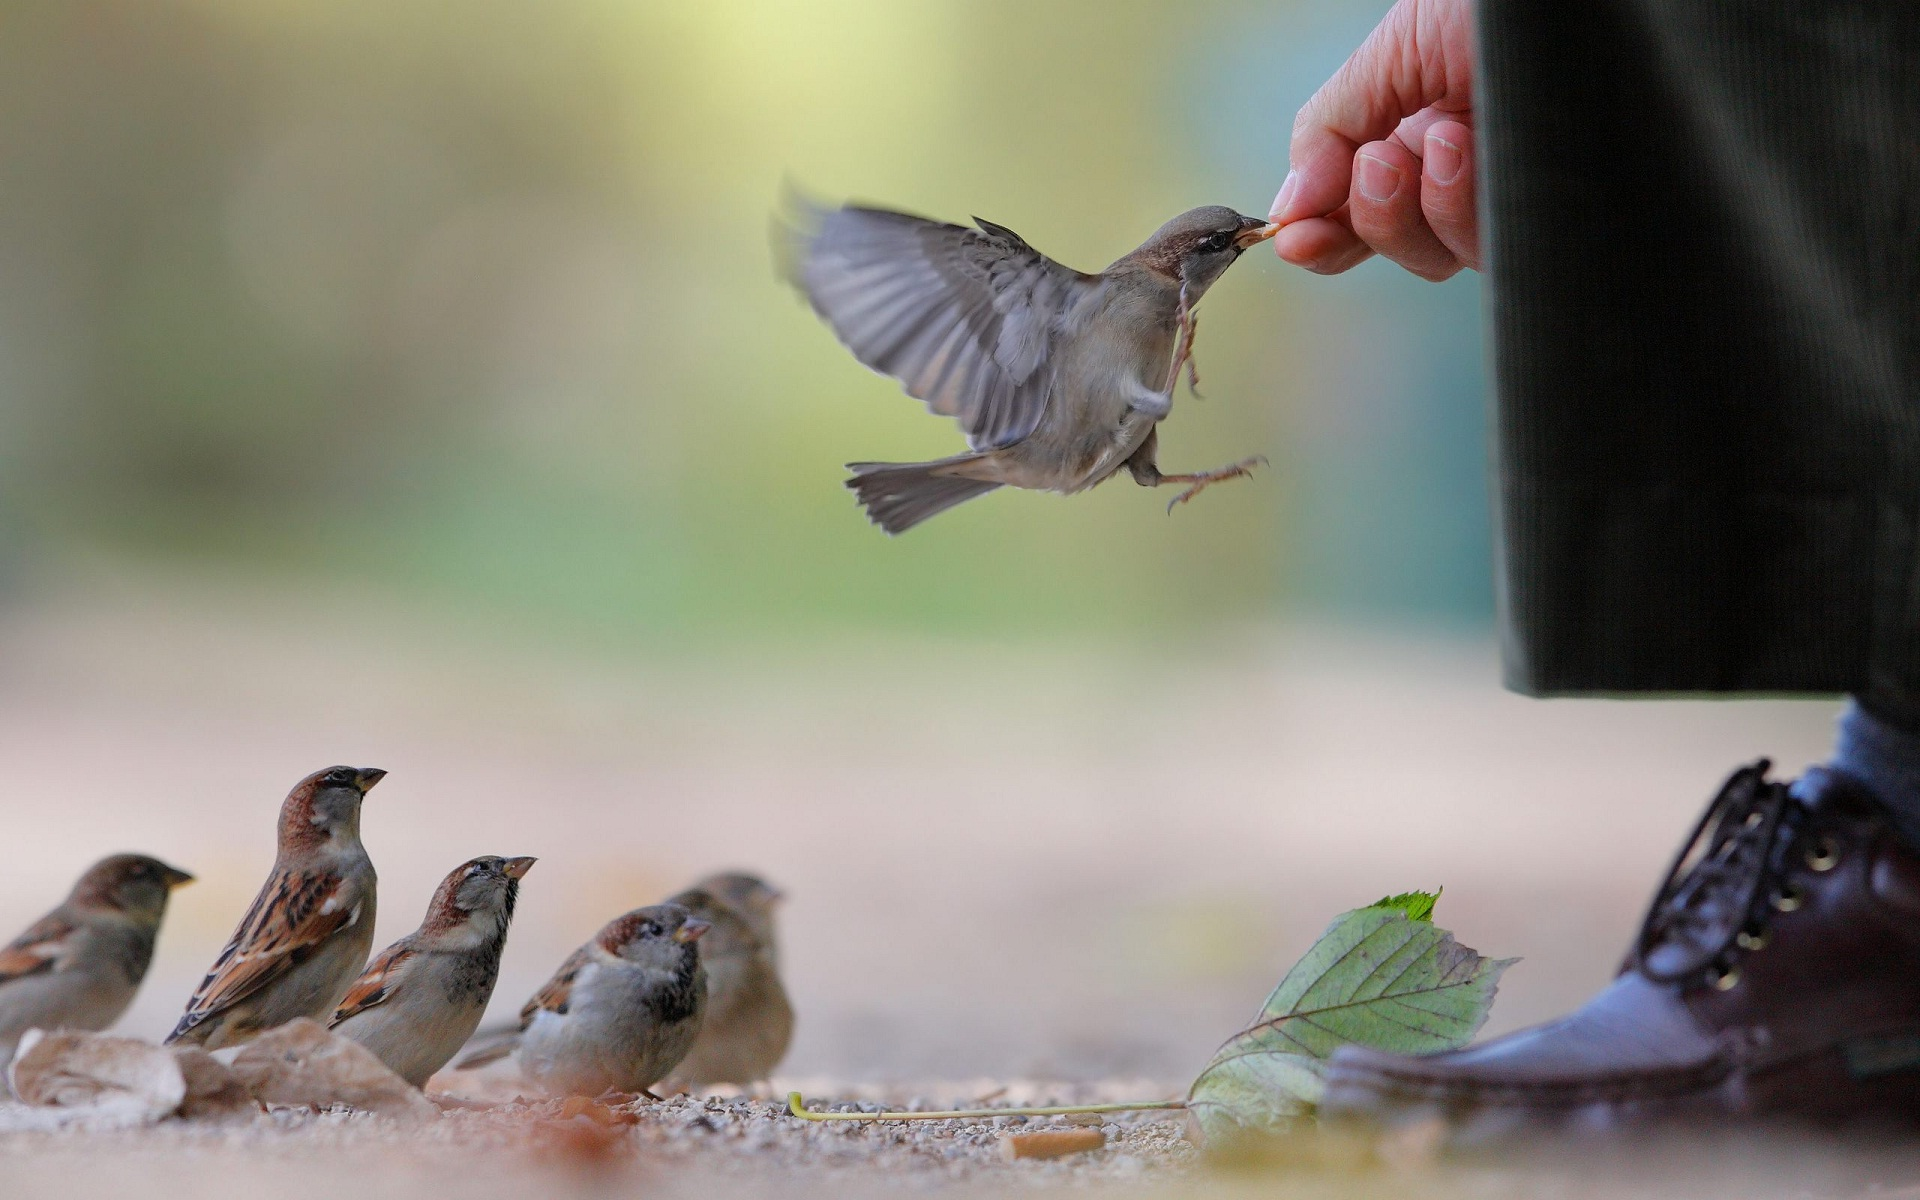 Cute Sparrow Bird Feeding From Man Hand